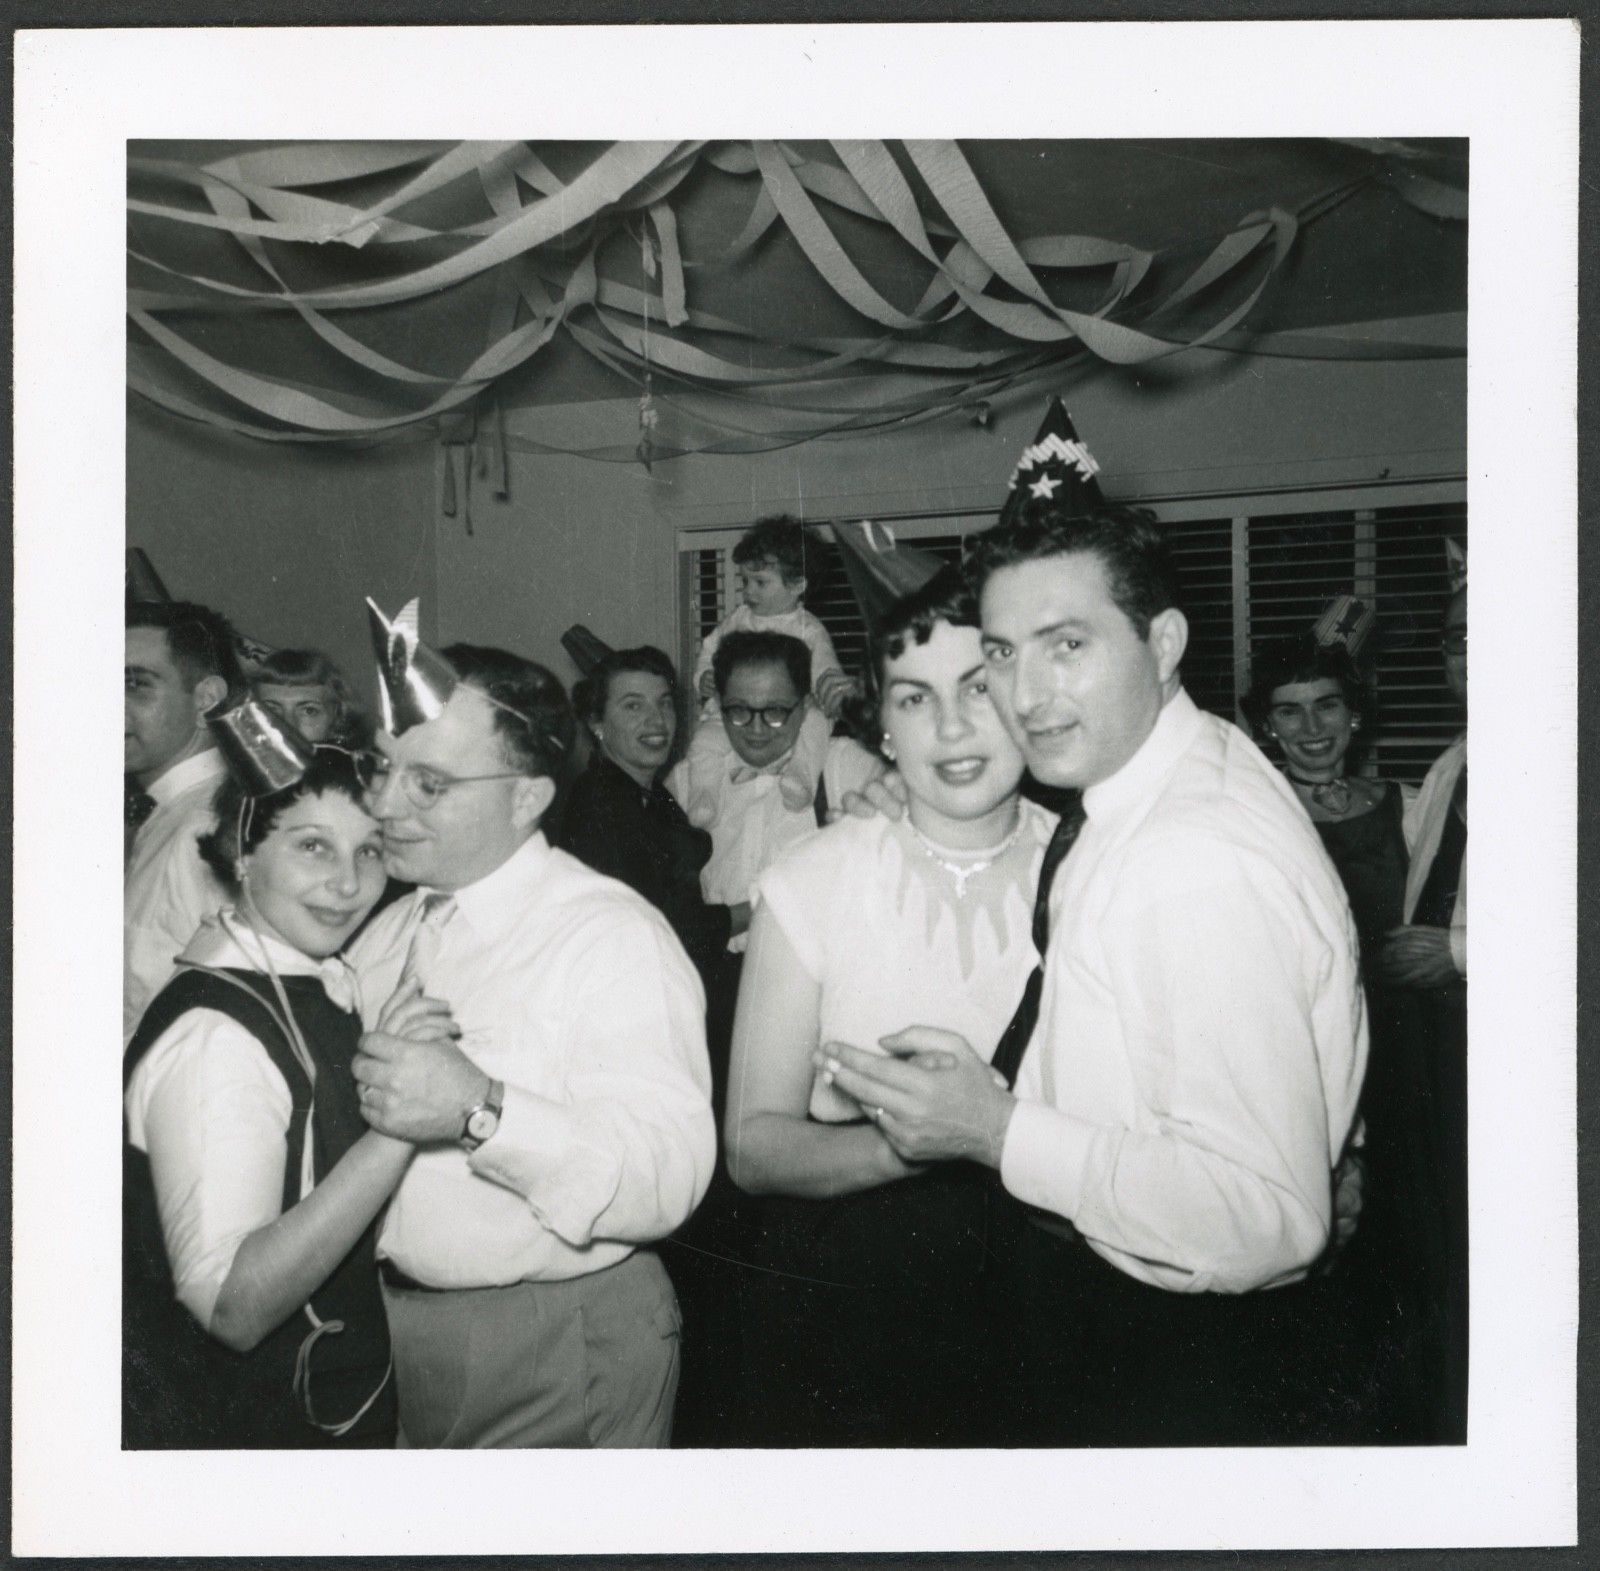 Party Time! Vintage New Years Eve Photos | Party themes ...